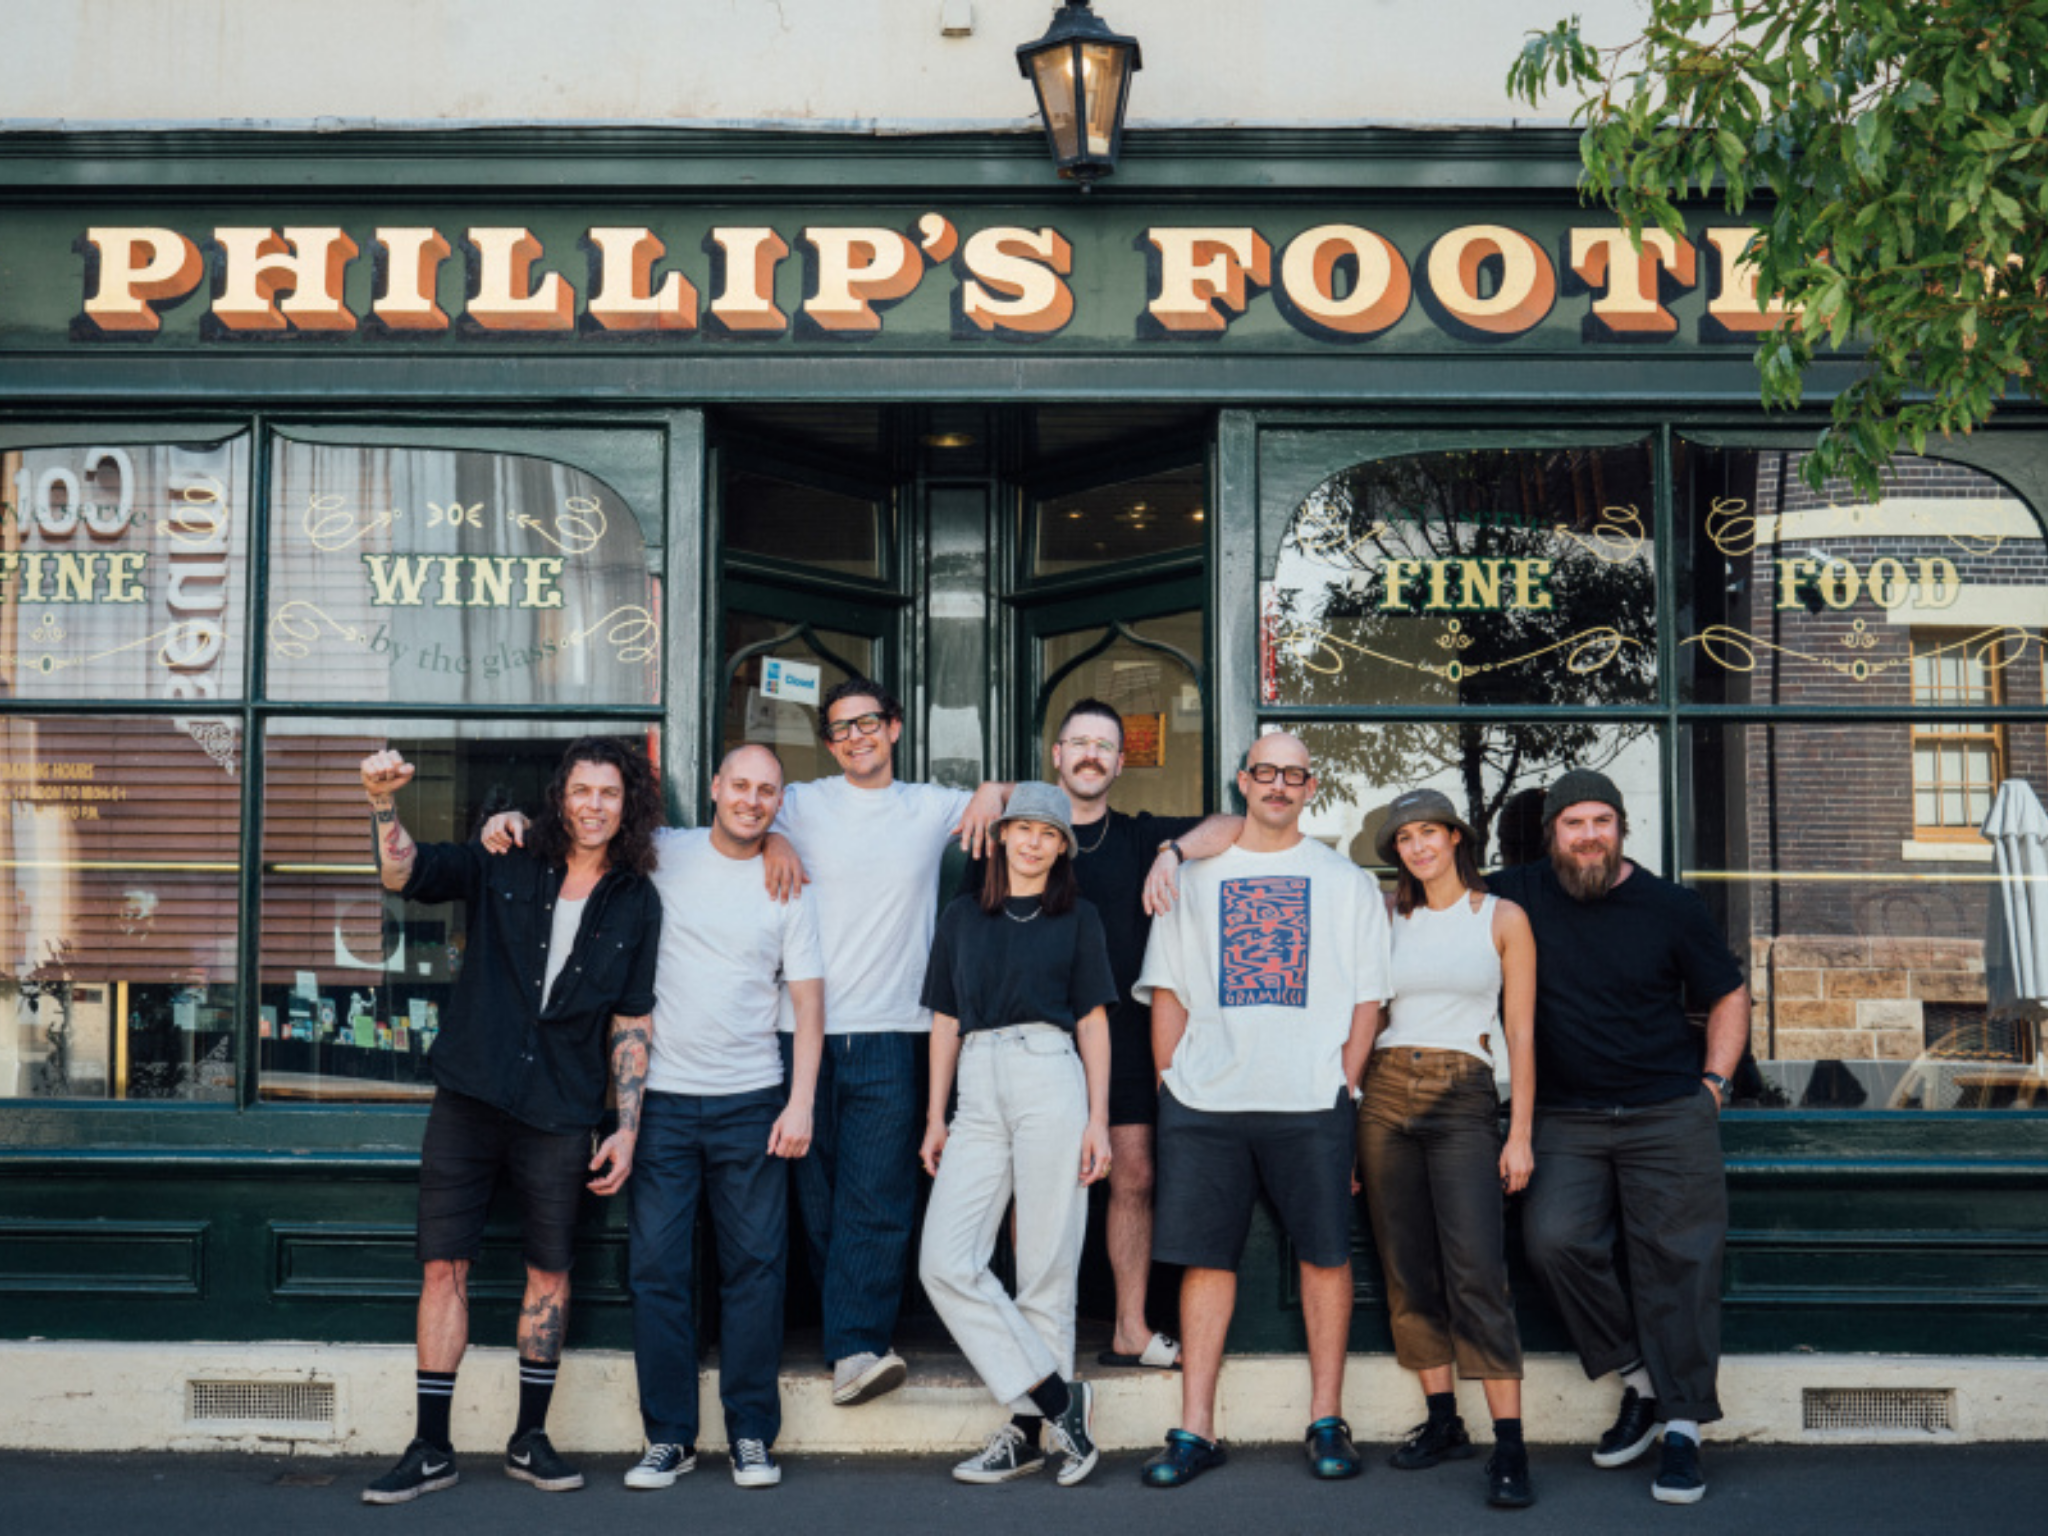 The group that brought us Frankie's, Shady Pines and Hubert to open wine bar in the historical Rocks